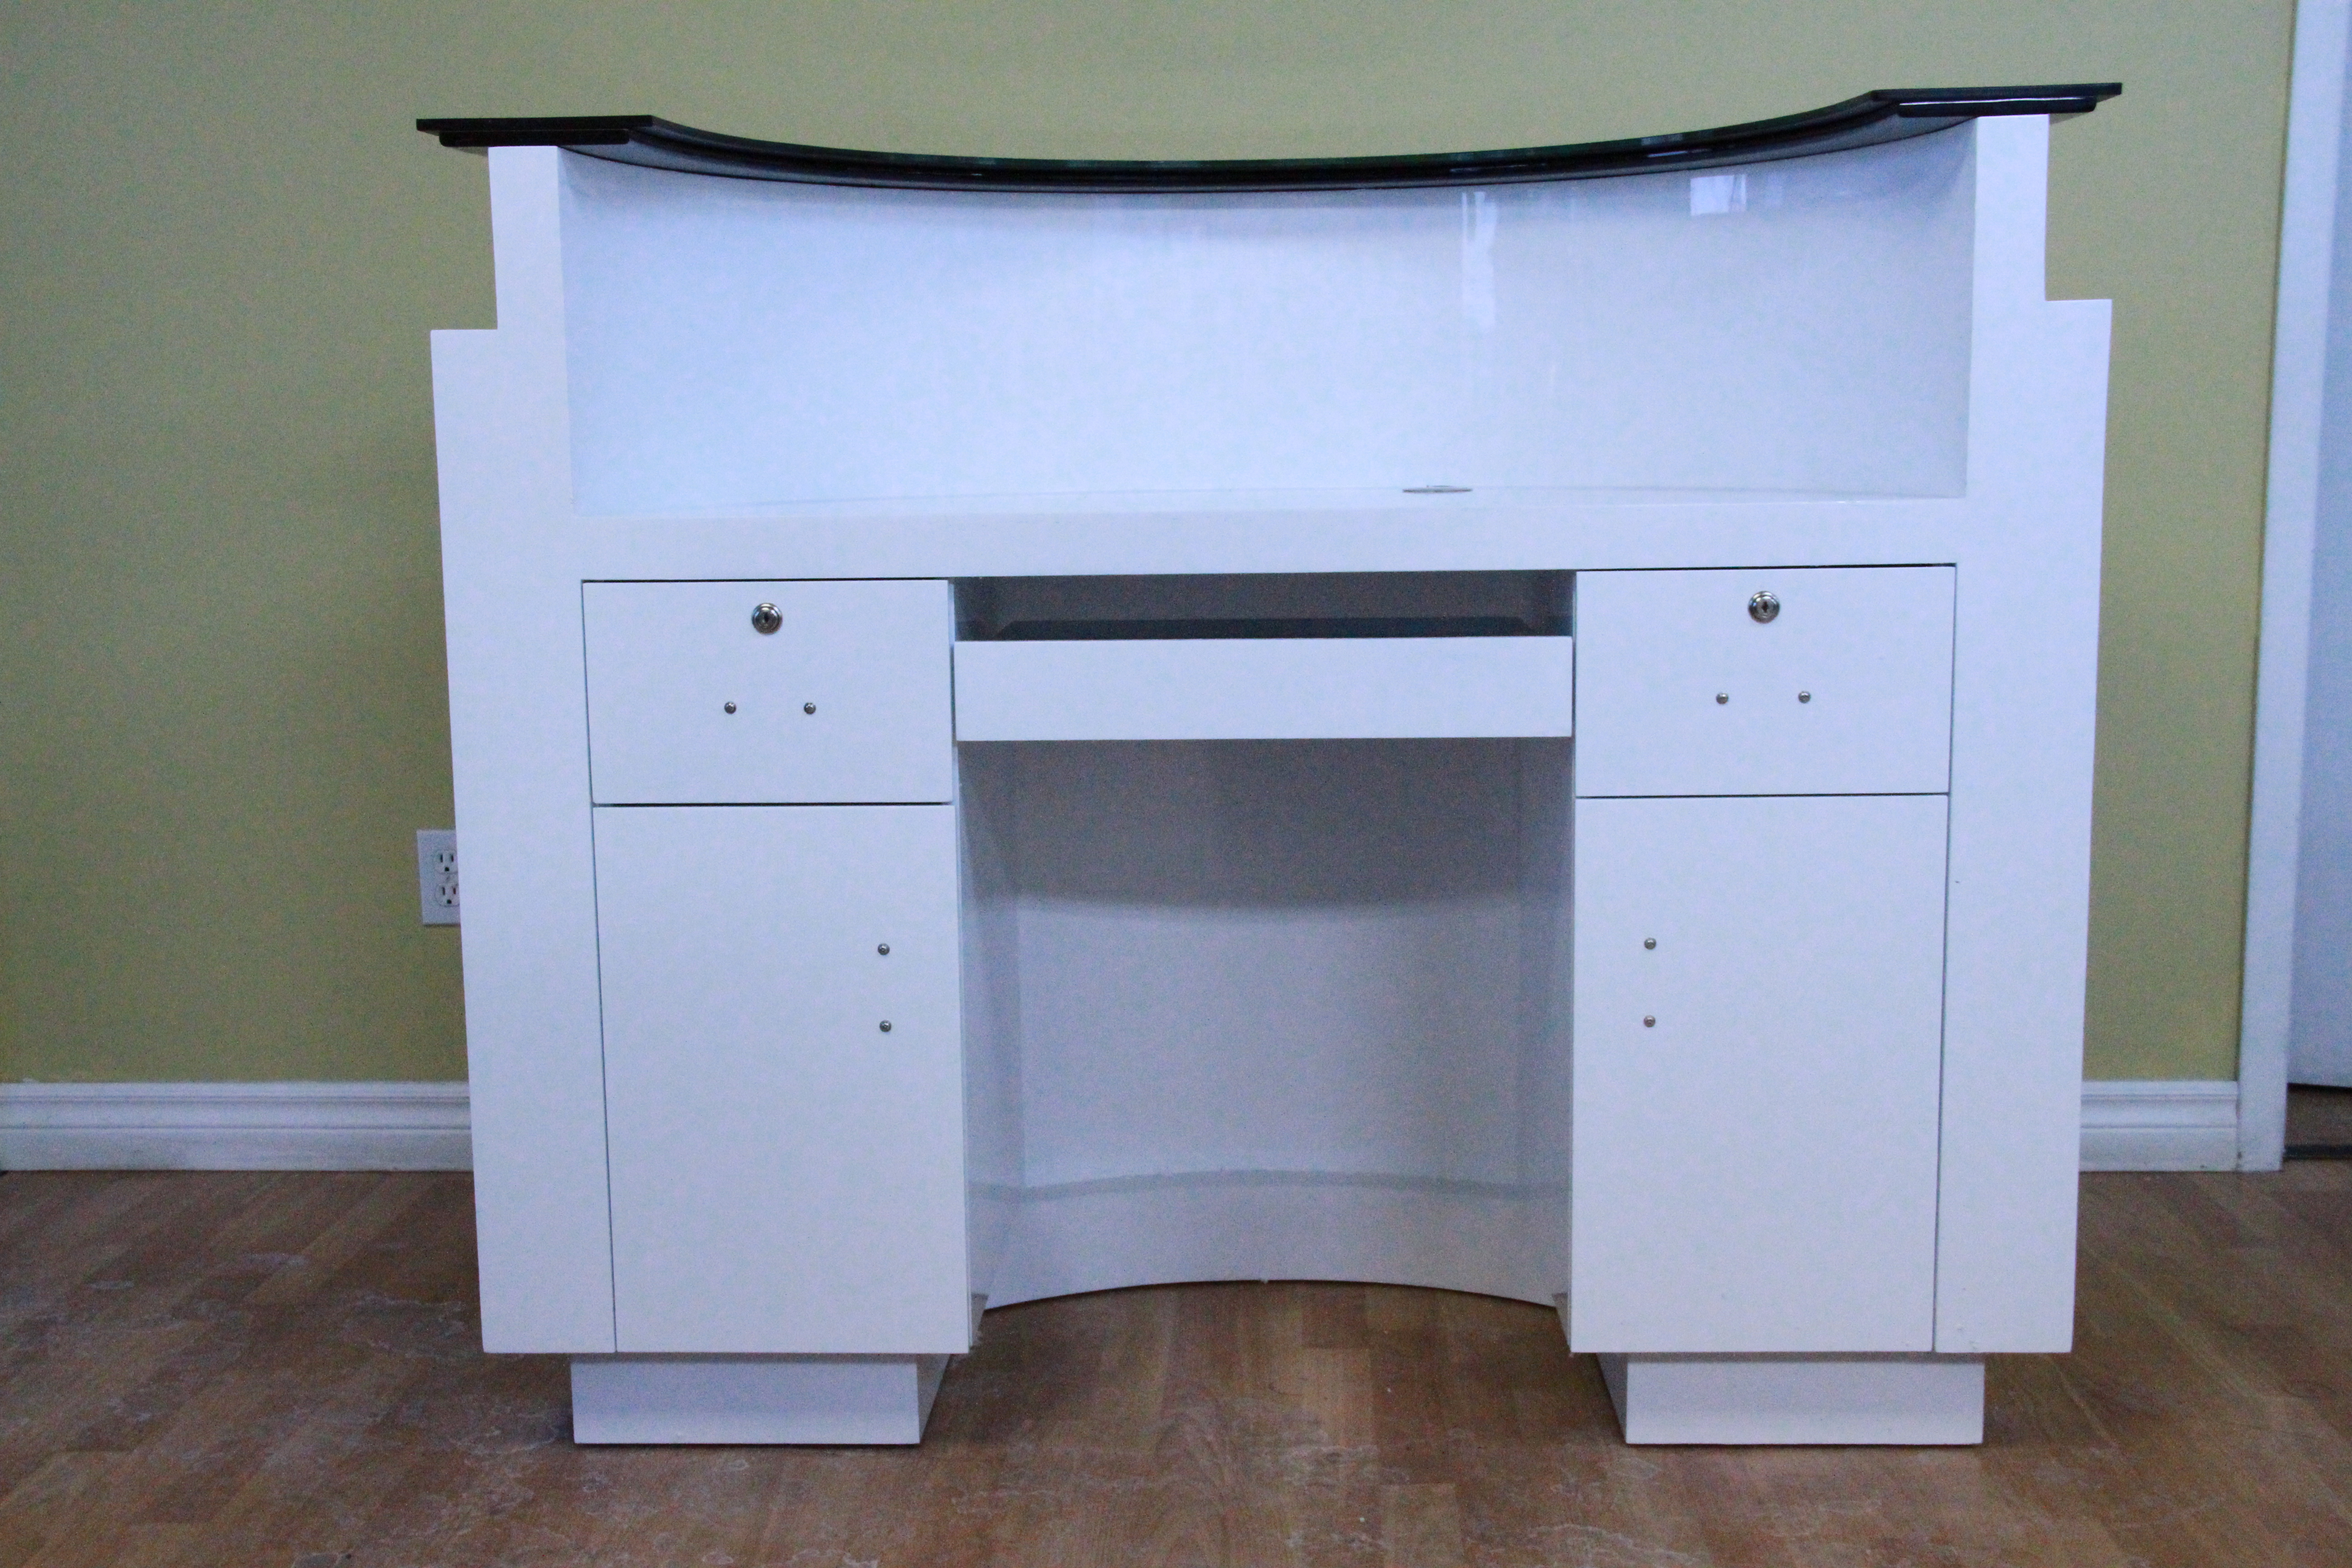 office area salon pics reception and sxs for desk furniture chairs of modular appealing most perfect round style